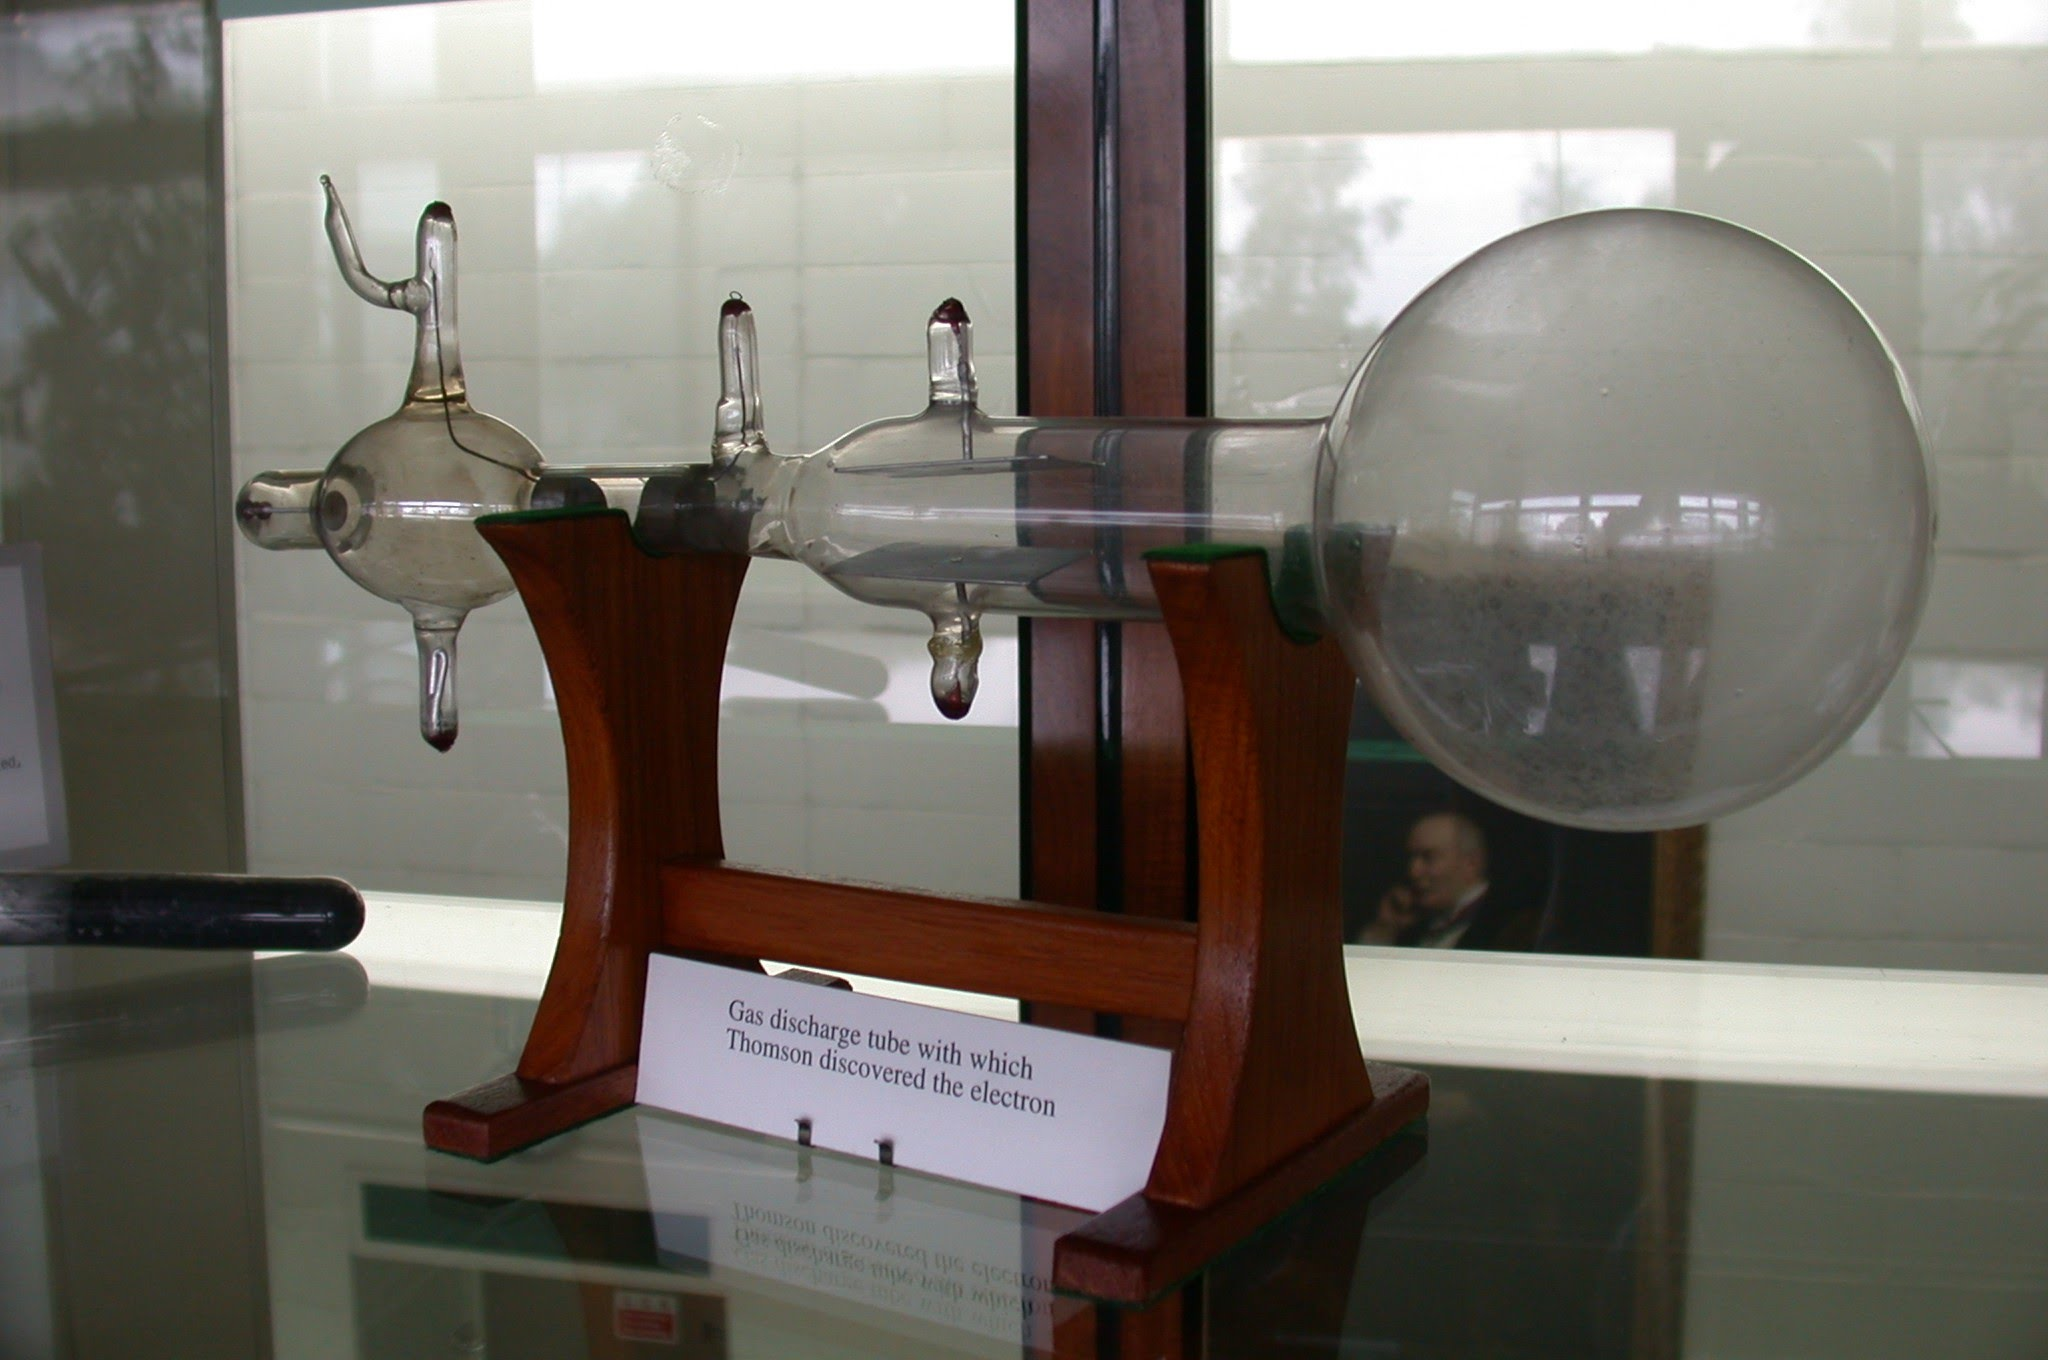 invention of the cathode ray tube Later and improved cathode ray experiments found that certain types of glass produced a fluorescent glow at the positive end of the tube william crookes discovered that a tube coated in a fluorescing material at the positive end, would produce a focused 'dot' when rays from the electron gun hit it.